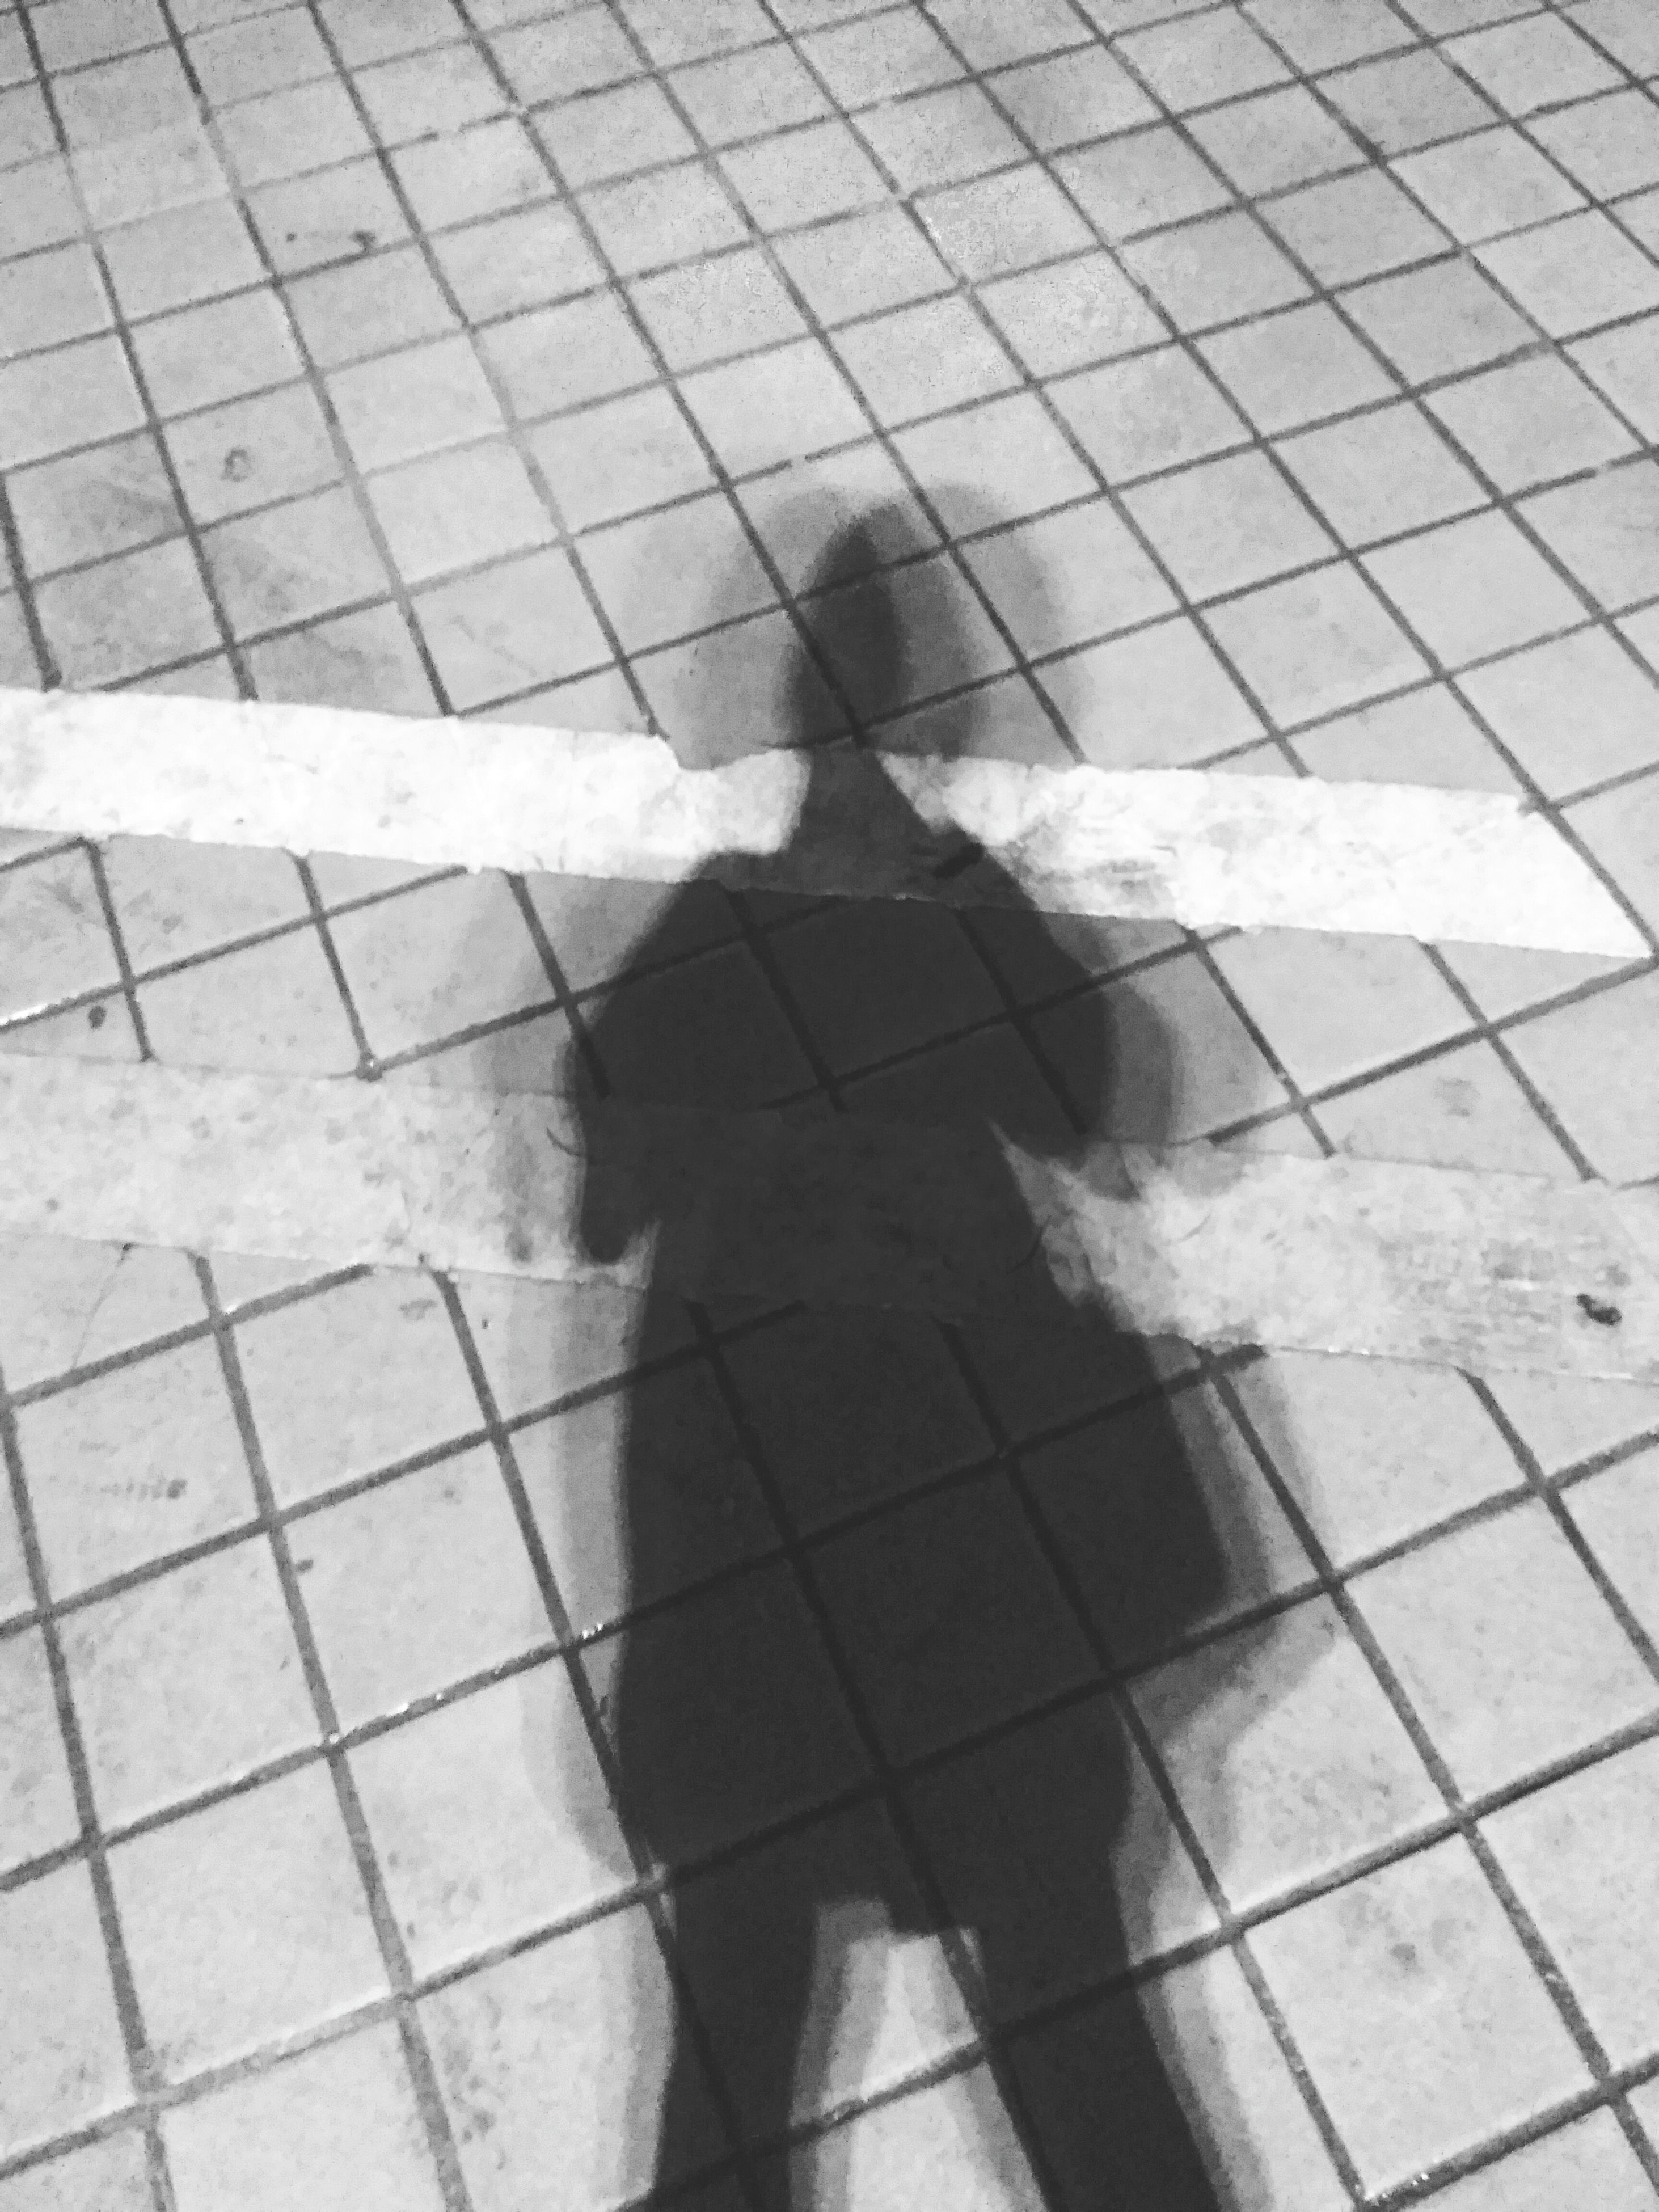 real people, focus on shadow, high angle view, lifestyles, shadow, sunlight, tiled floor, day, one person, outdoors, men